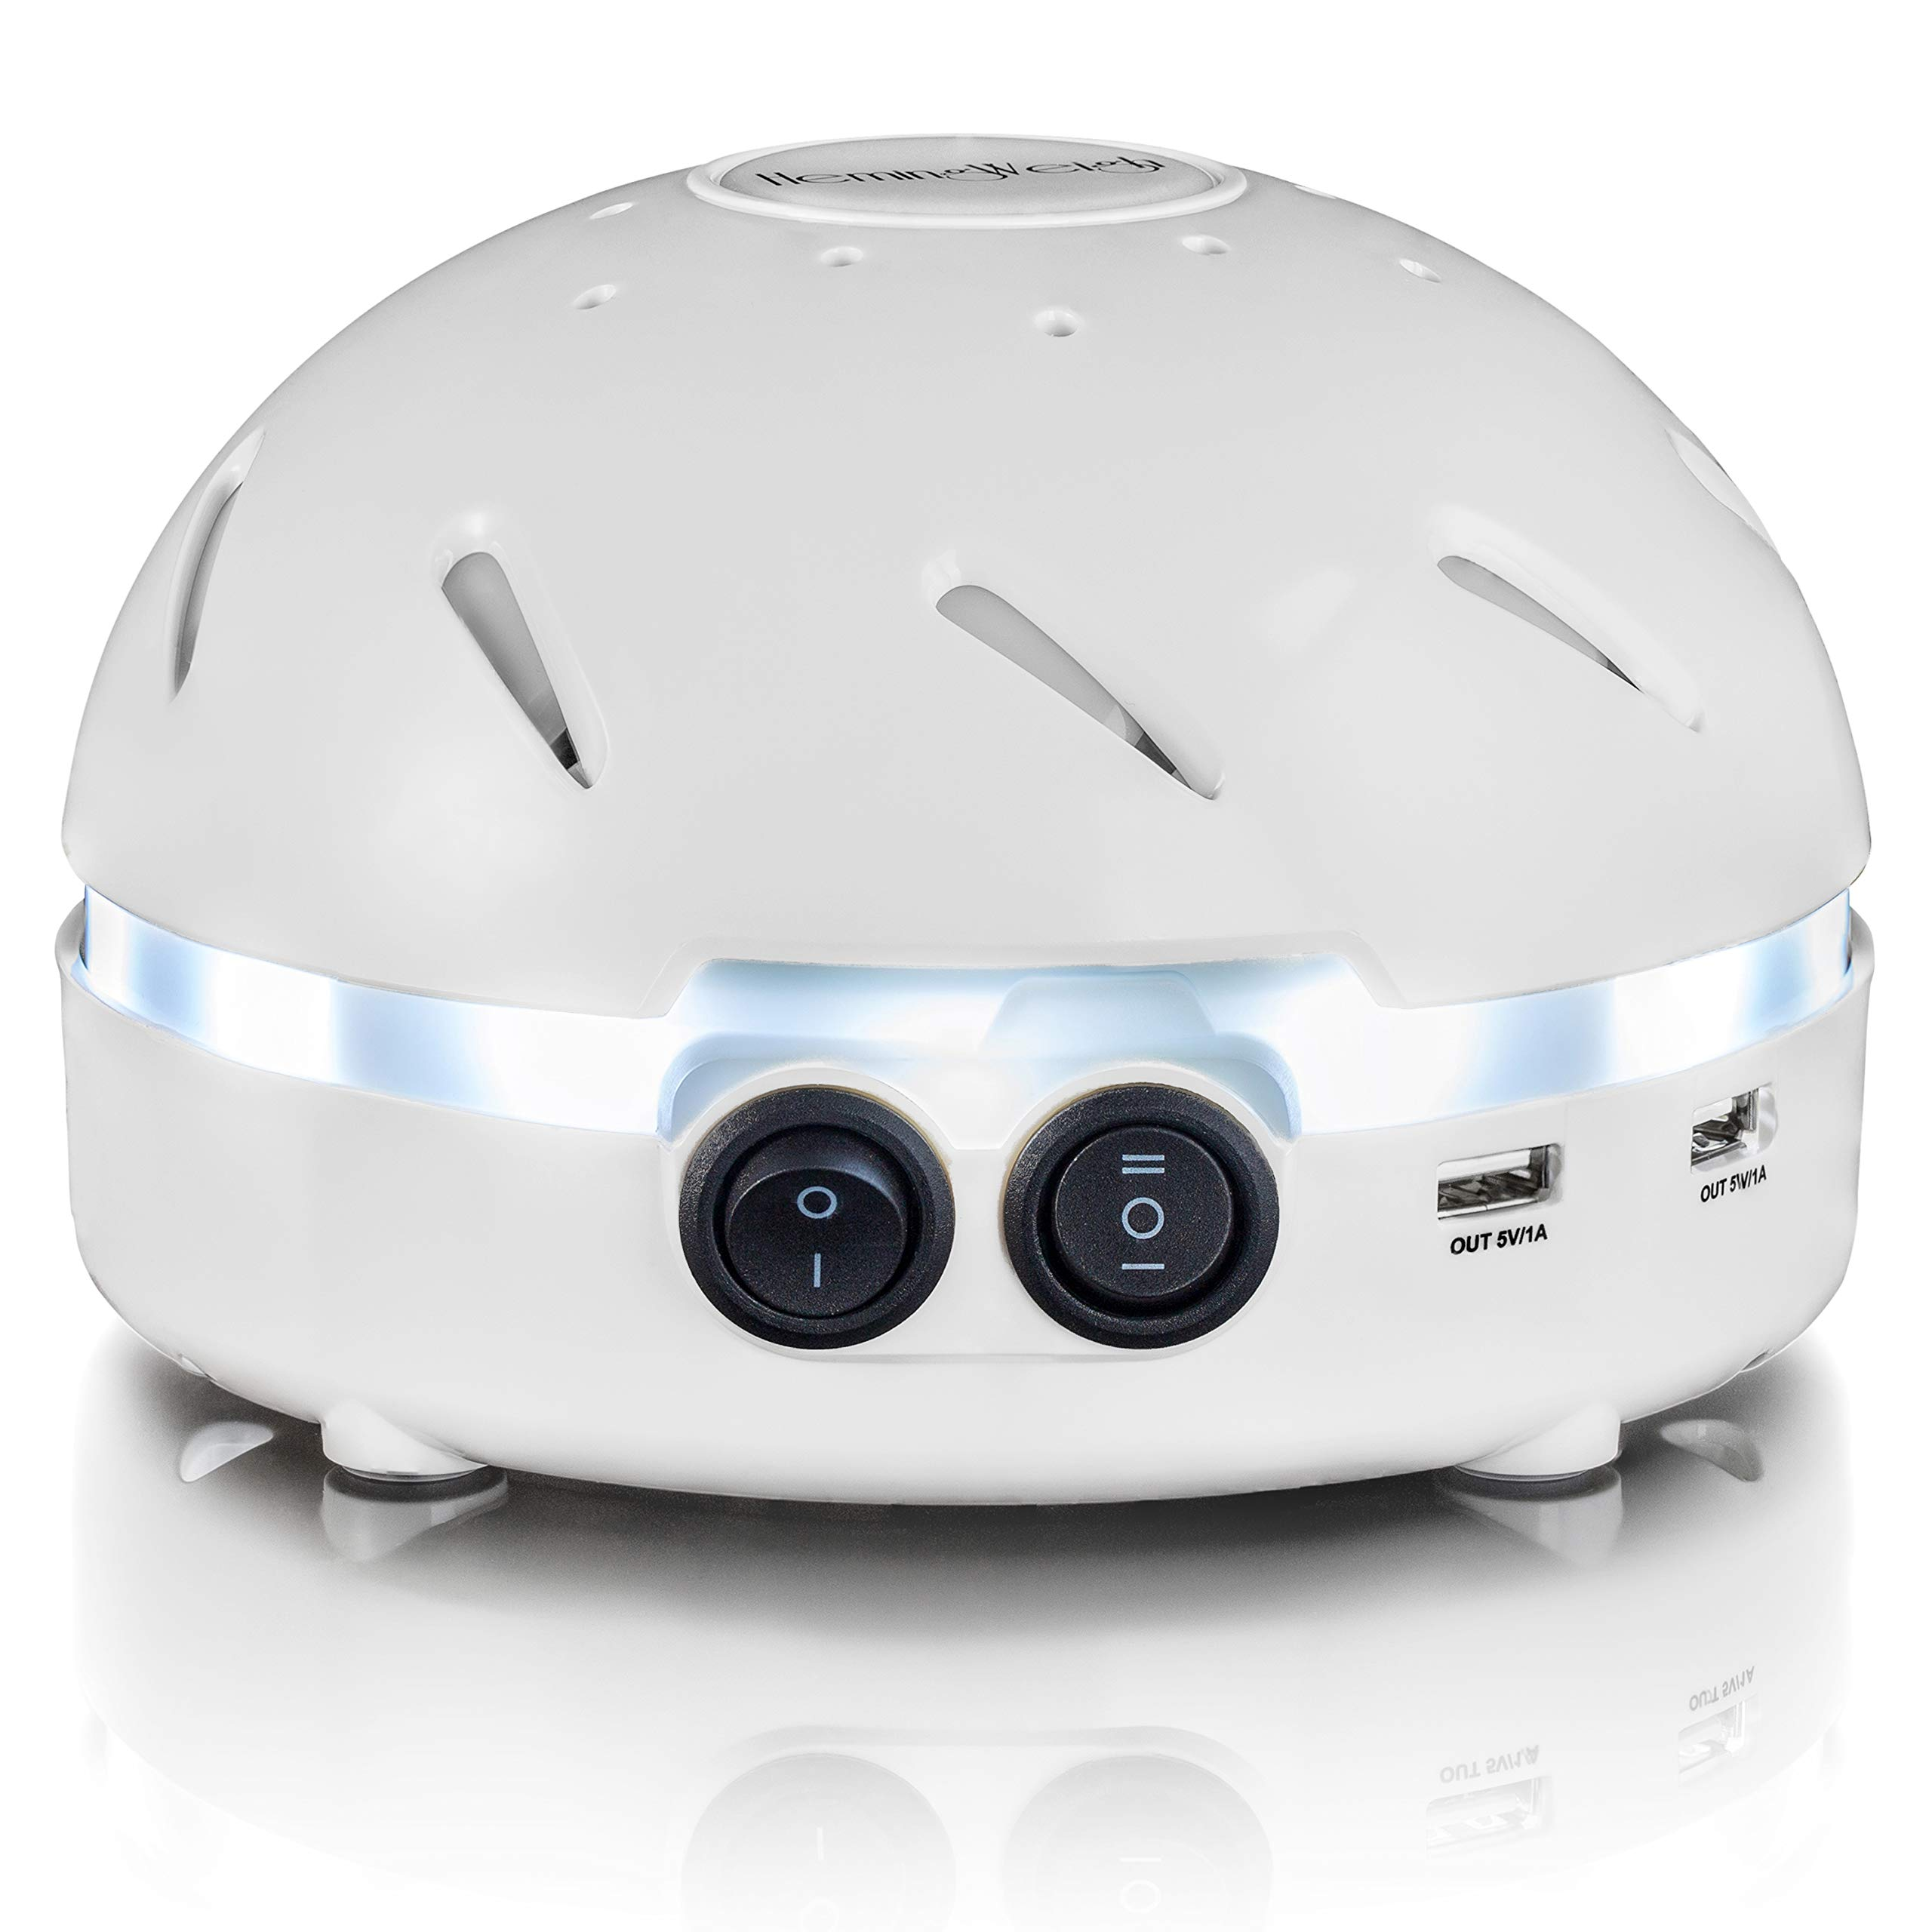 HemingWeigh White Noise Sound Machine - Quality Sounds Masks Disturbing Noise and Reducing Sound for Improved Sleep Relaxation and Enriched Concentration - Built in USB & LED Night Light. by HemingWeigh